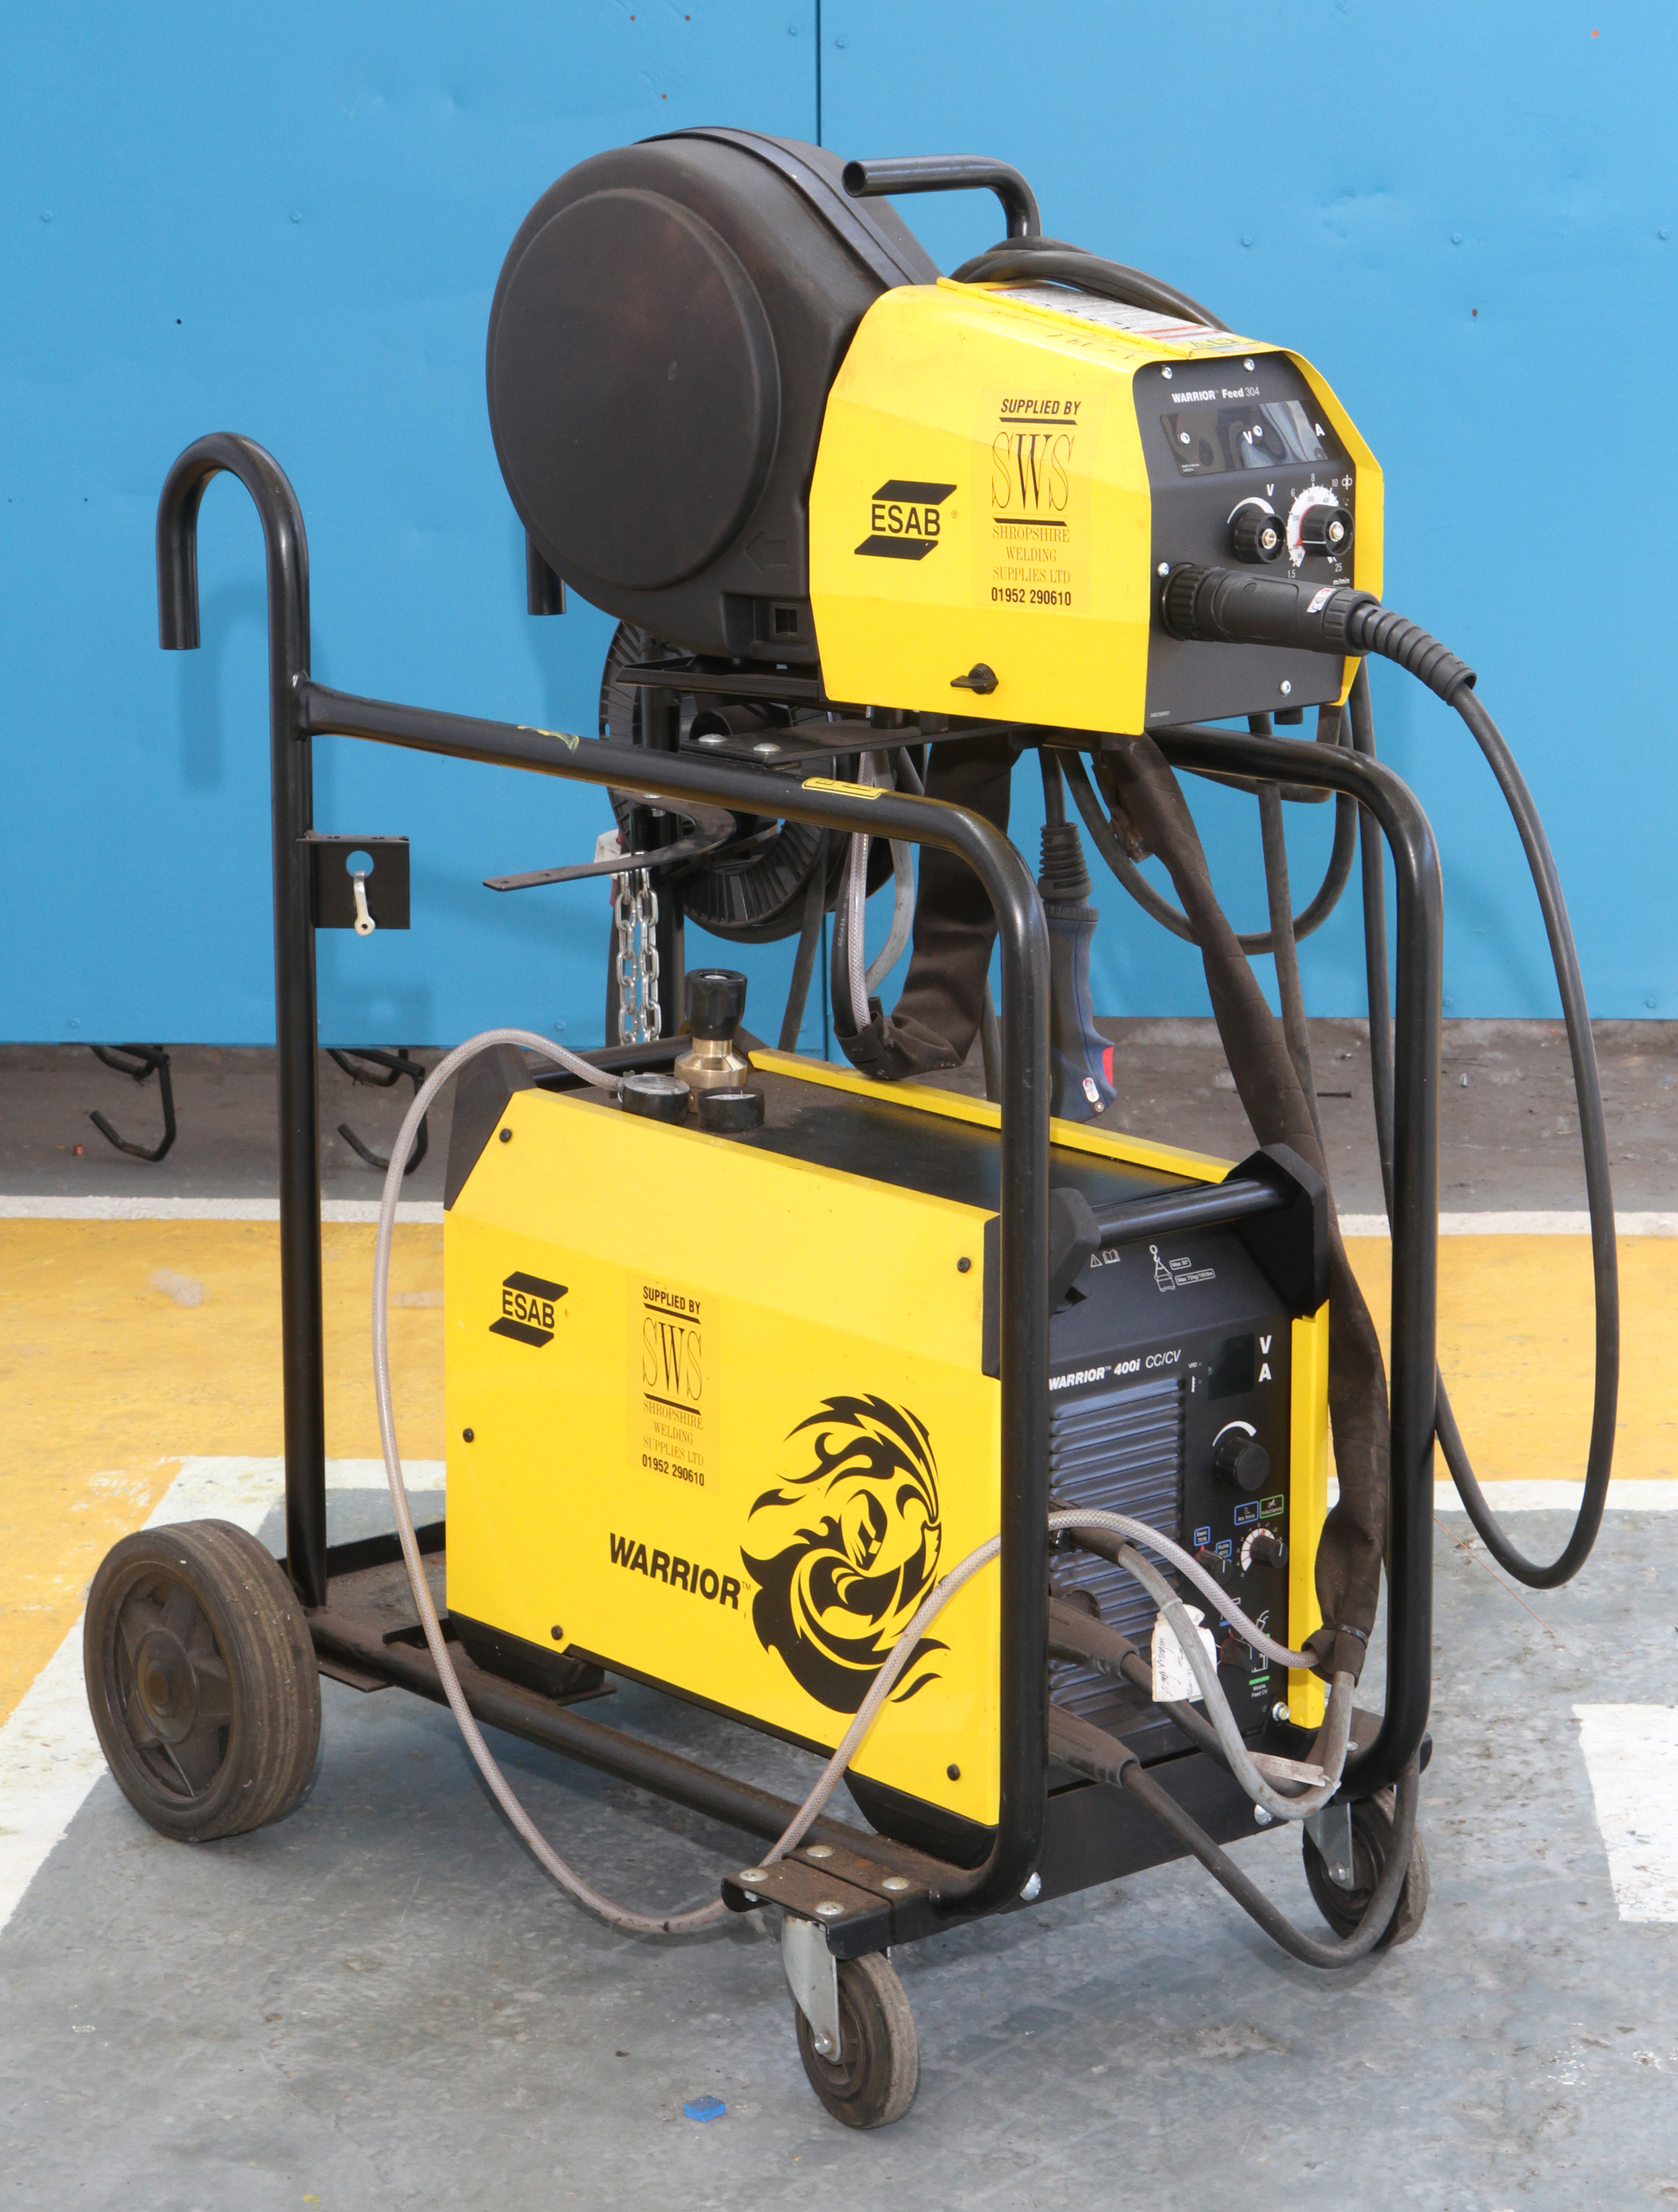 Used Warrior 400i Welding sets for sale